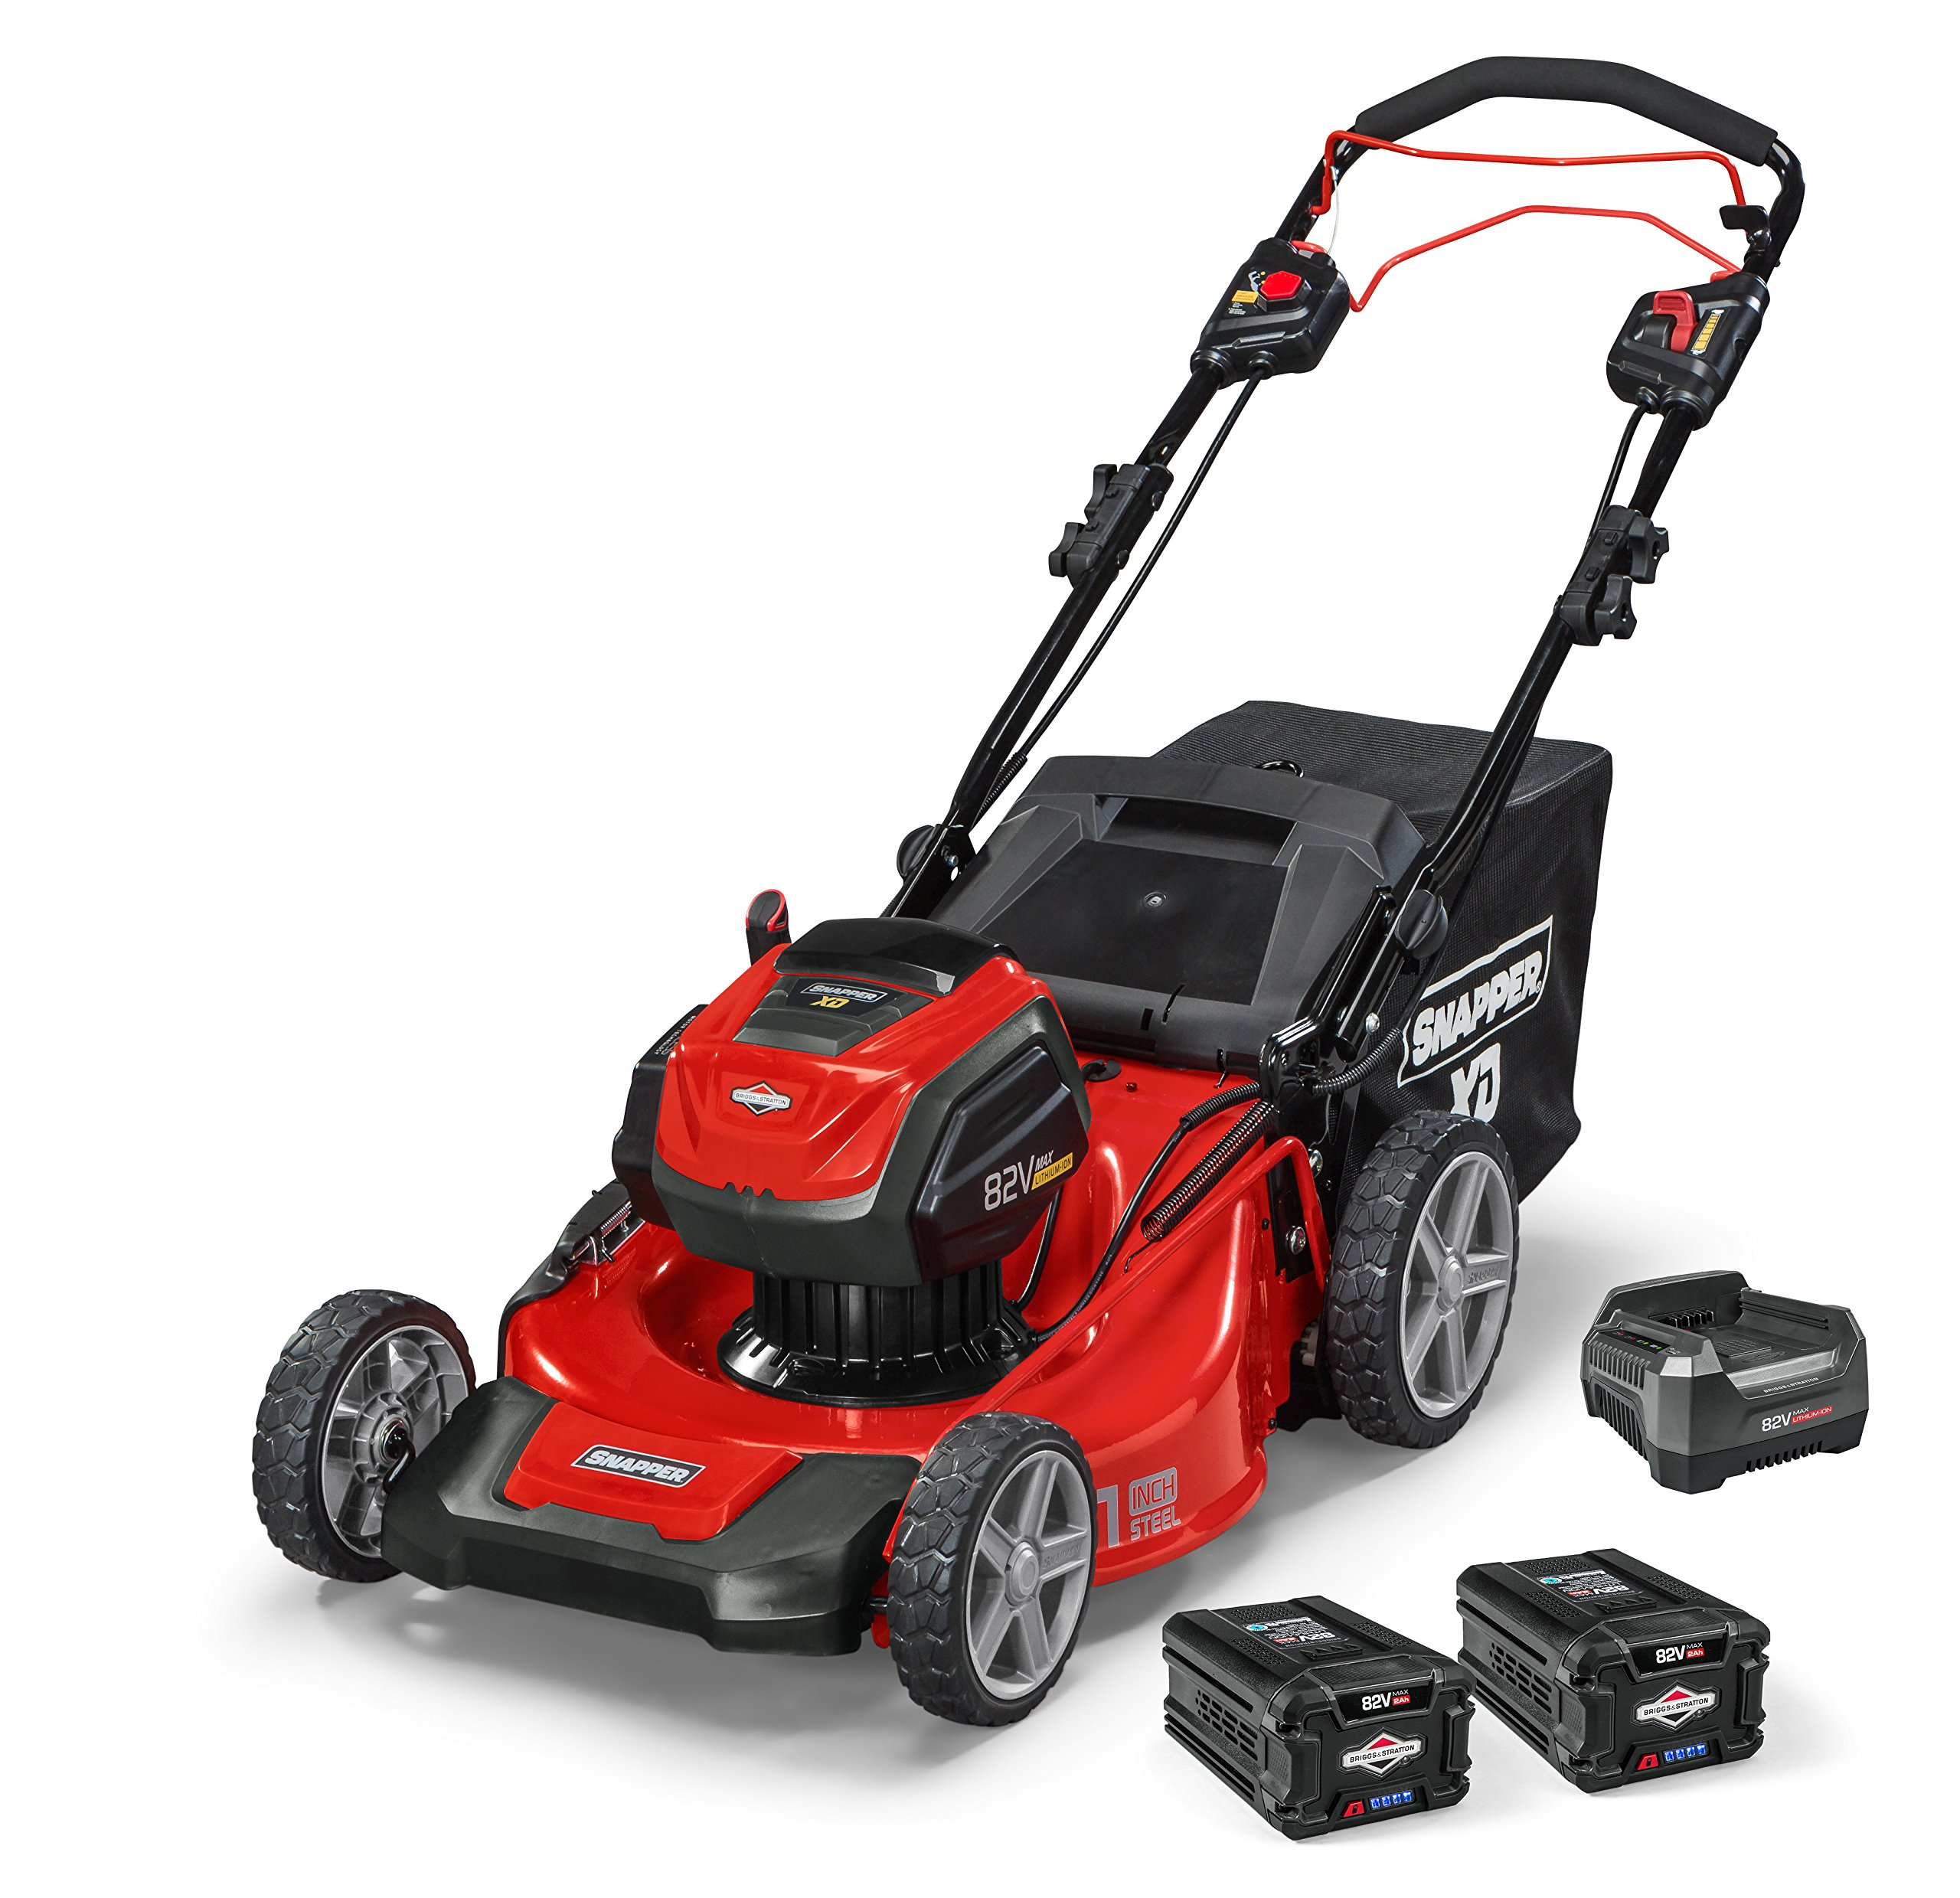 Snapper XD 82V MAX Electric Cordless 21-Inch Self-Propelled Lawnmower Kit with (2) 2.0 Batteries & (1) Rapid Charger, 1687914, SXD21SPWM82K by Snapper